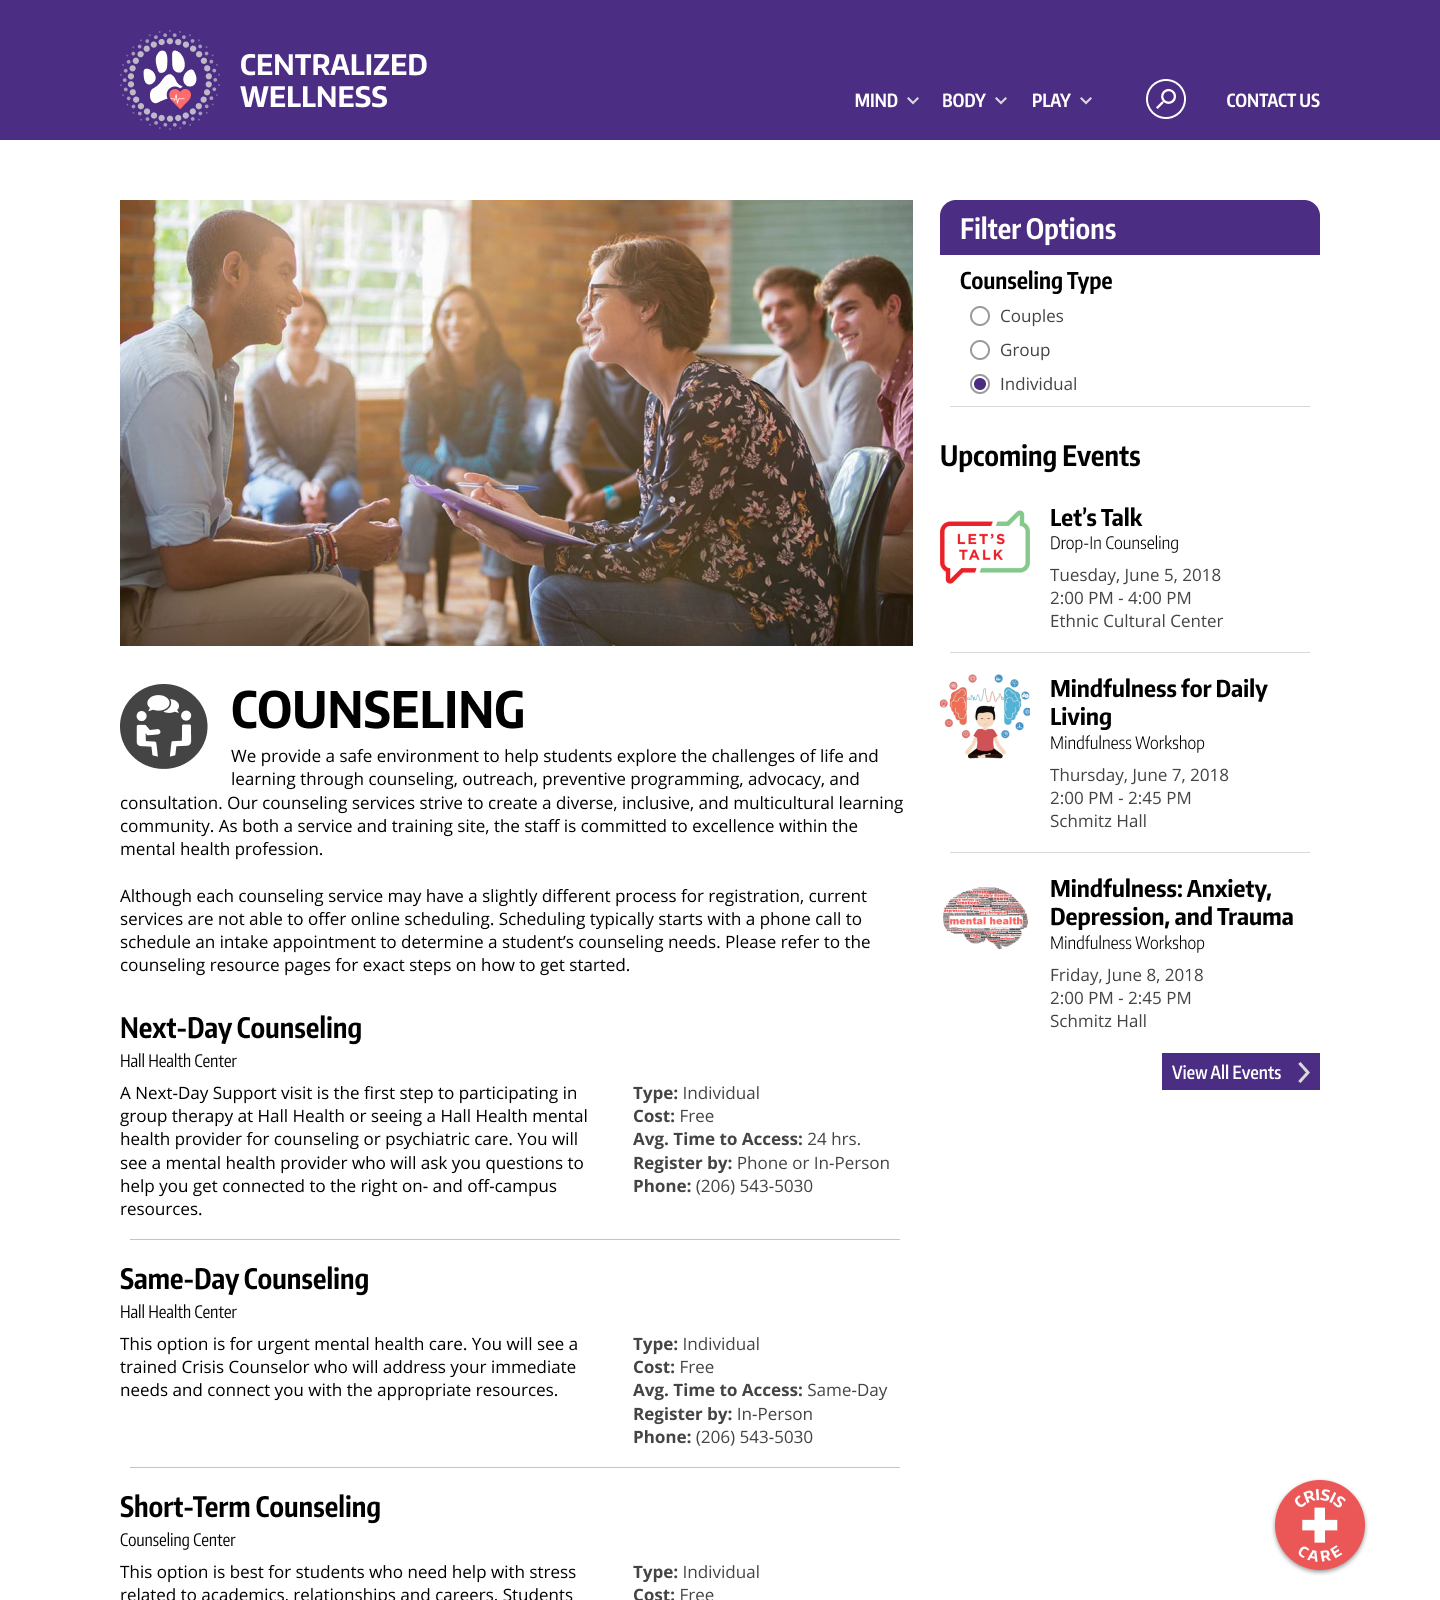 Counseling:  A results page that provides students with resource options.